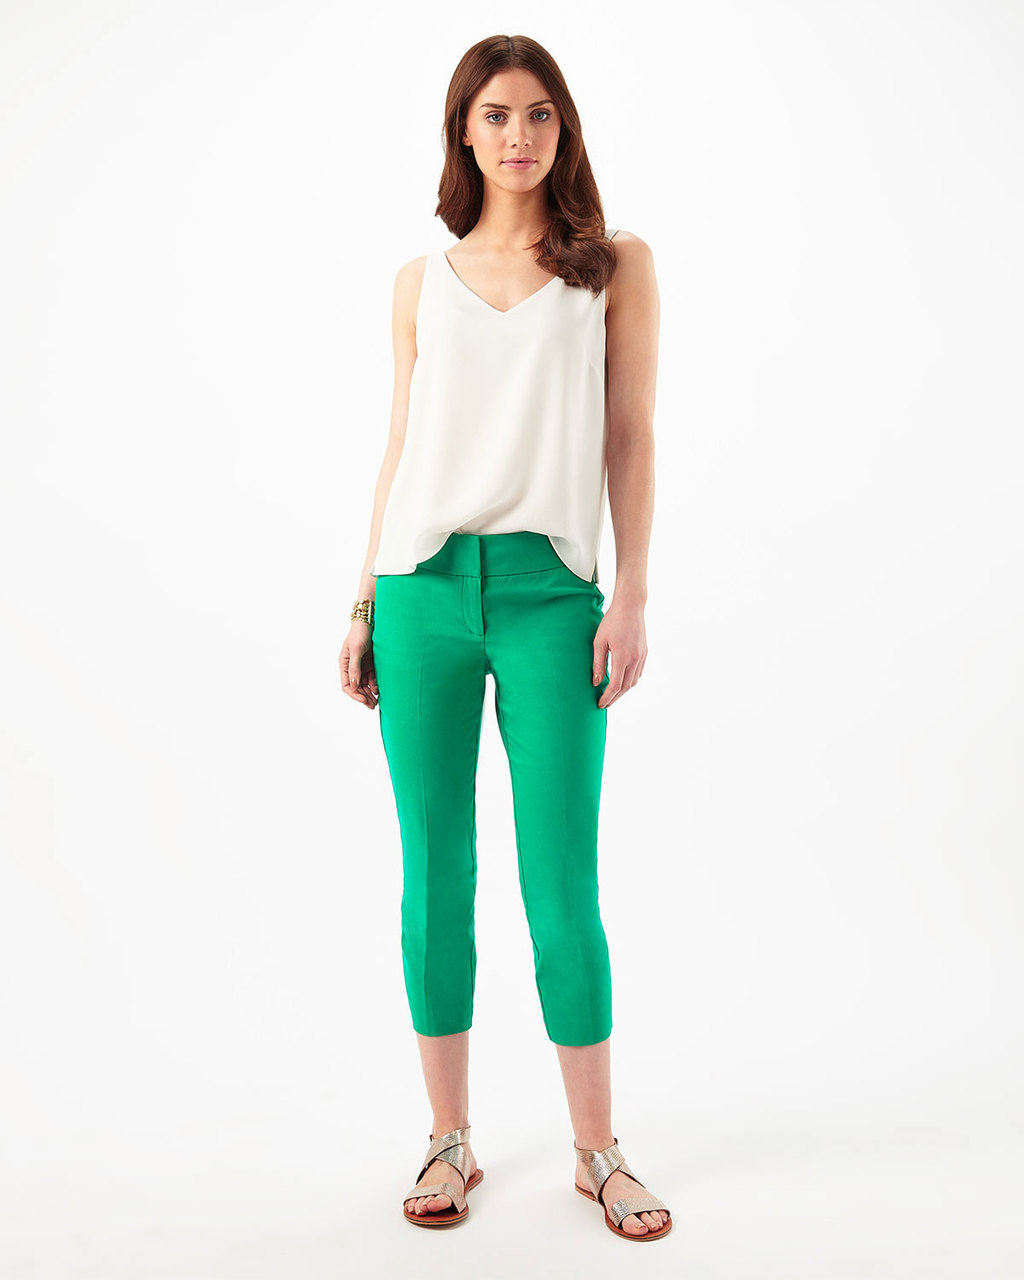 Betty Crop Trouser - pattern: plain; waist: mid/regular rise; predominant colour: emerald green; occasions: casual; length: calf length; fibres: cotton - mix; fit: skinny/tight leg; pattern type: fabric; texture group: other - light to midweight; style: standard; season: s/s 2016; wardrobe: highlight